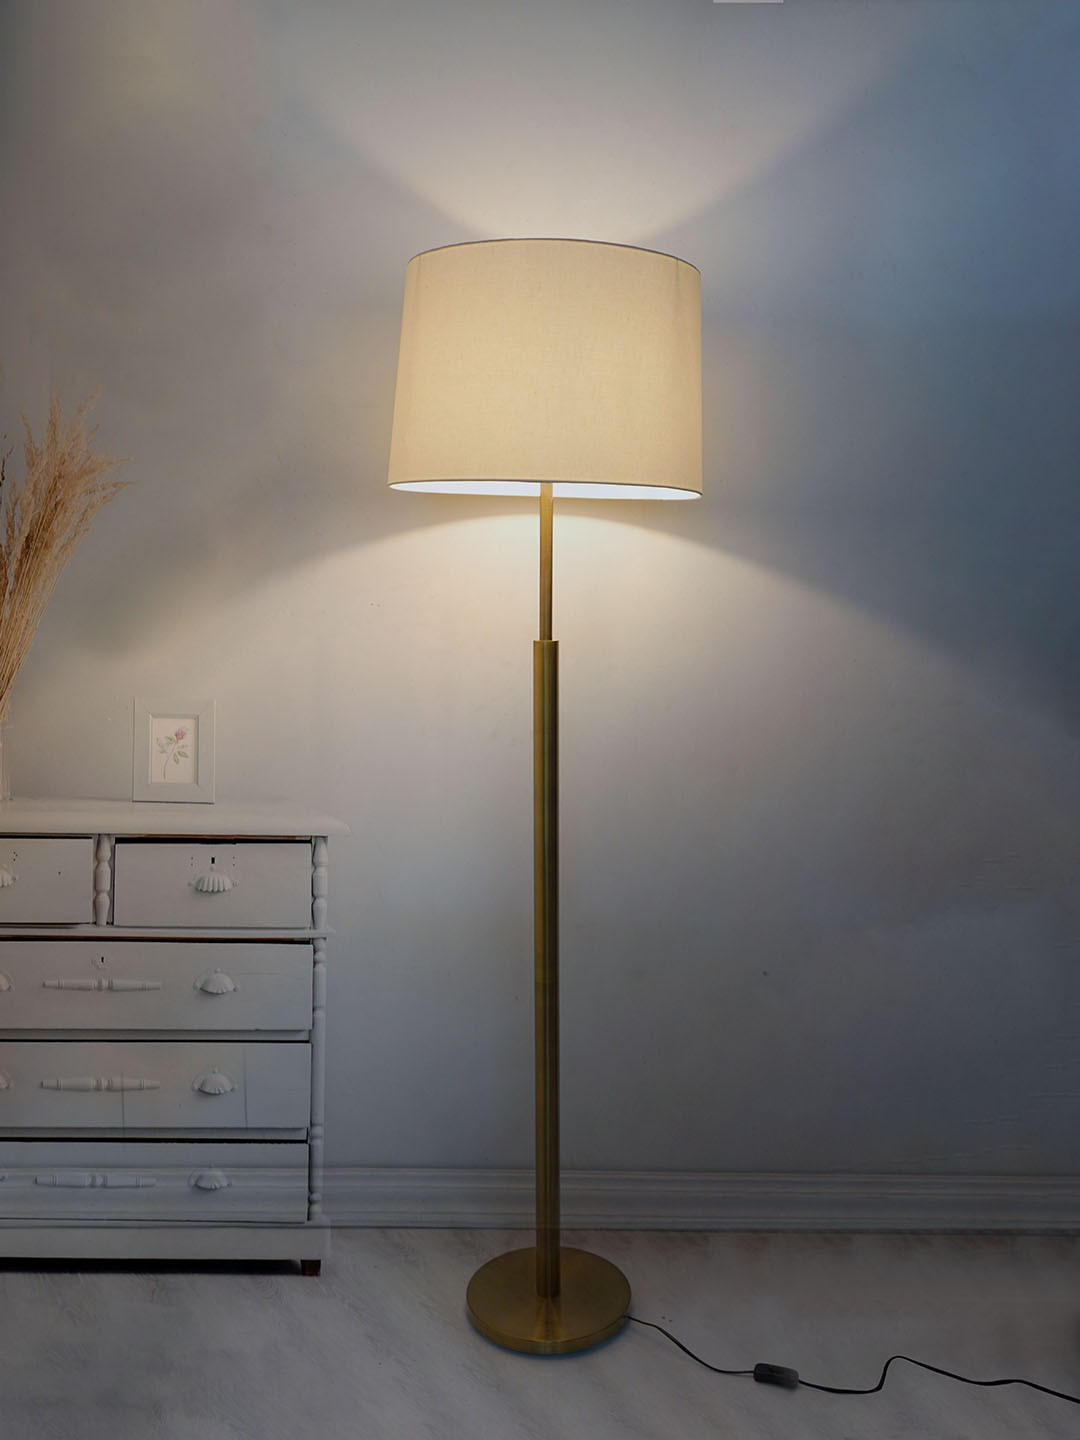 Classic Simple Steel Floor Lamp in Brushed Antique Brass Finish Off-white Drum Shade